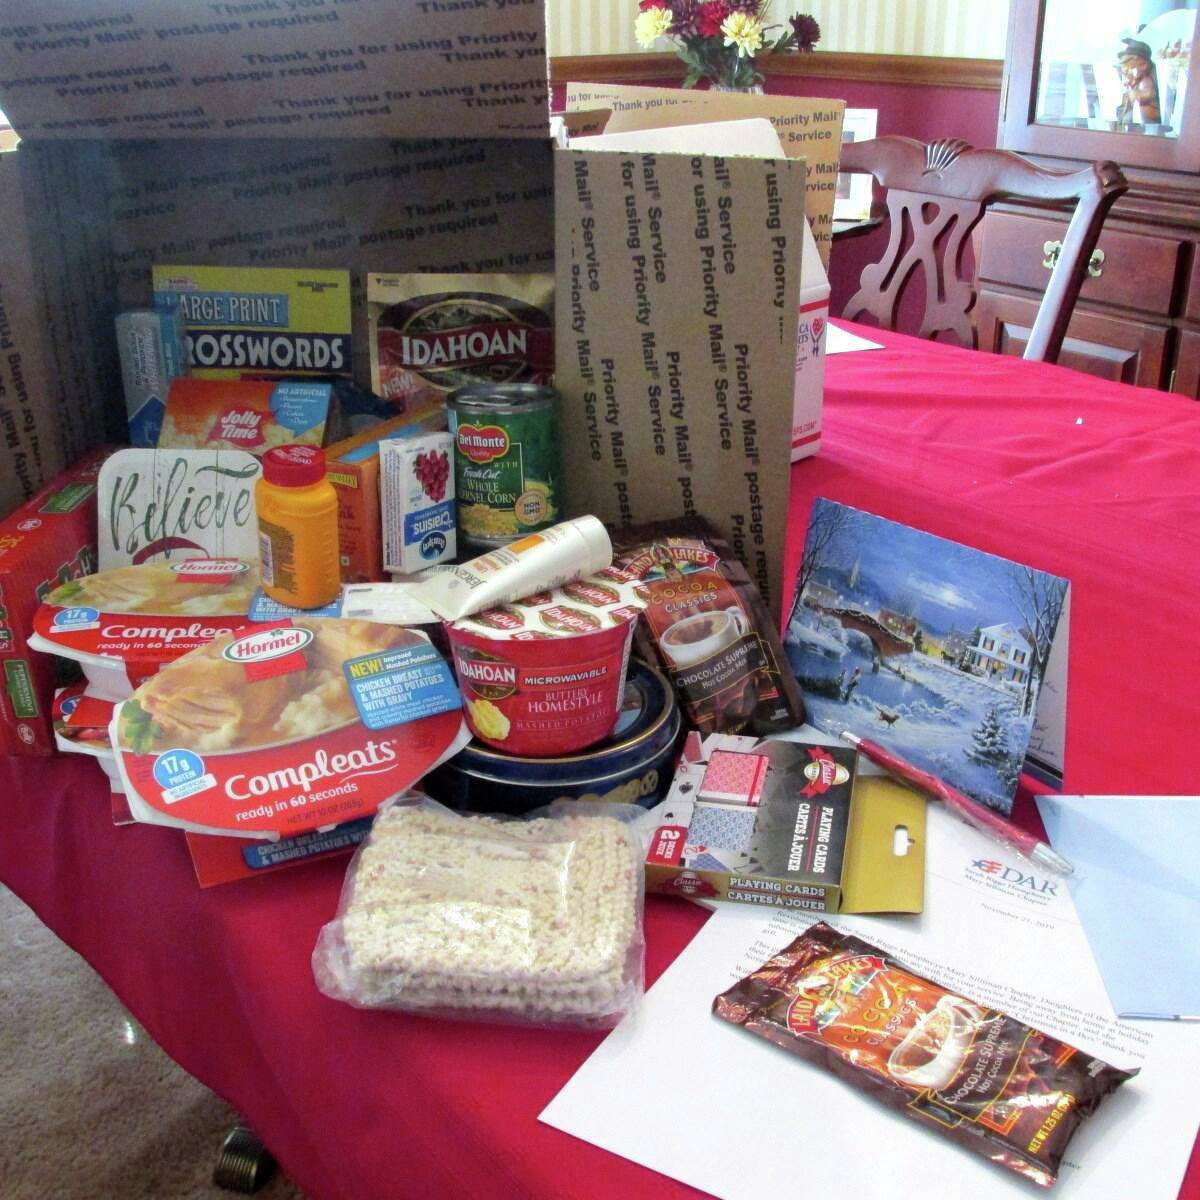 The Sarah Riggs Humphreys-Mary Silliman Chapter of the DAR recently mailed grocery shopping and buy microwaveable foods for a Christmas dinner along with playing cards, personal care items, and some Christmas candy and microwaveable popcorn to send to three service people deployed overseas.